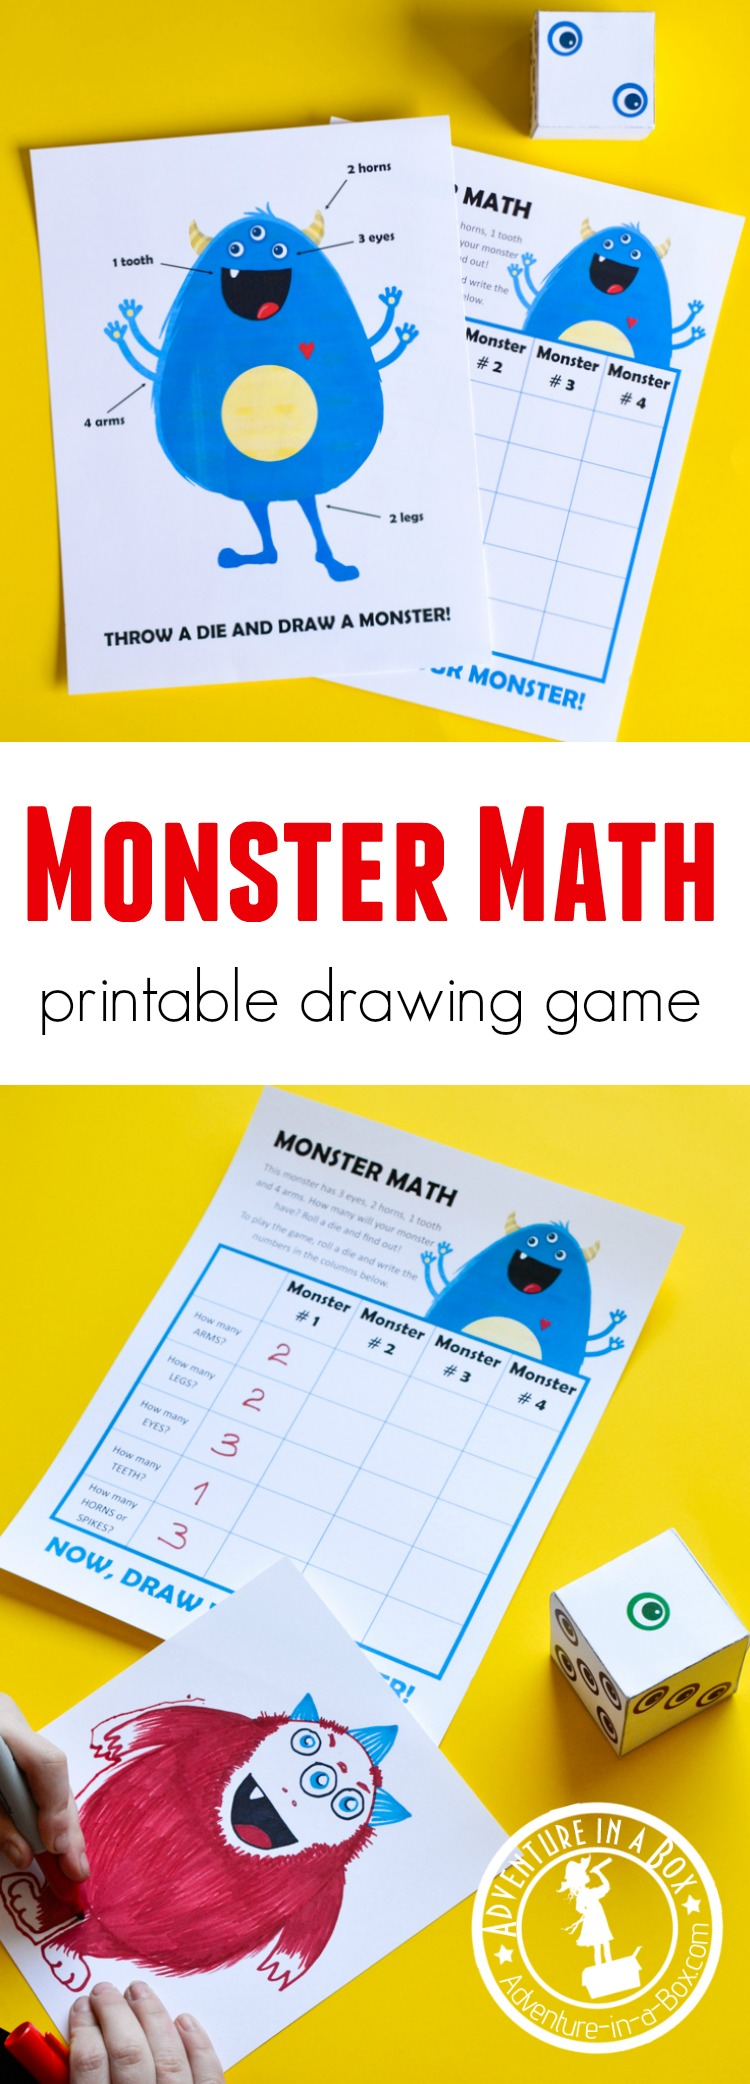 Monster Math is a printable game that challenges children to draw while working on simple math - counting, number writing and recognition. Roll a die and see what kind of monster you will draw. Most suitable for teaching math at #preschool and #kindergarten. #homeschool #mathactivity #homeschooling #printablegame